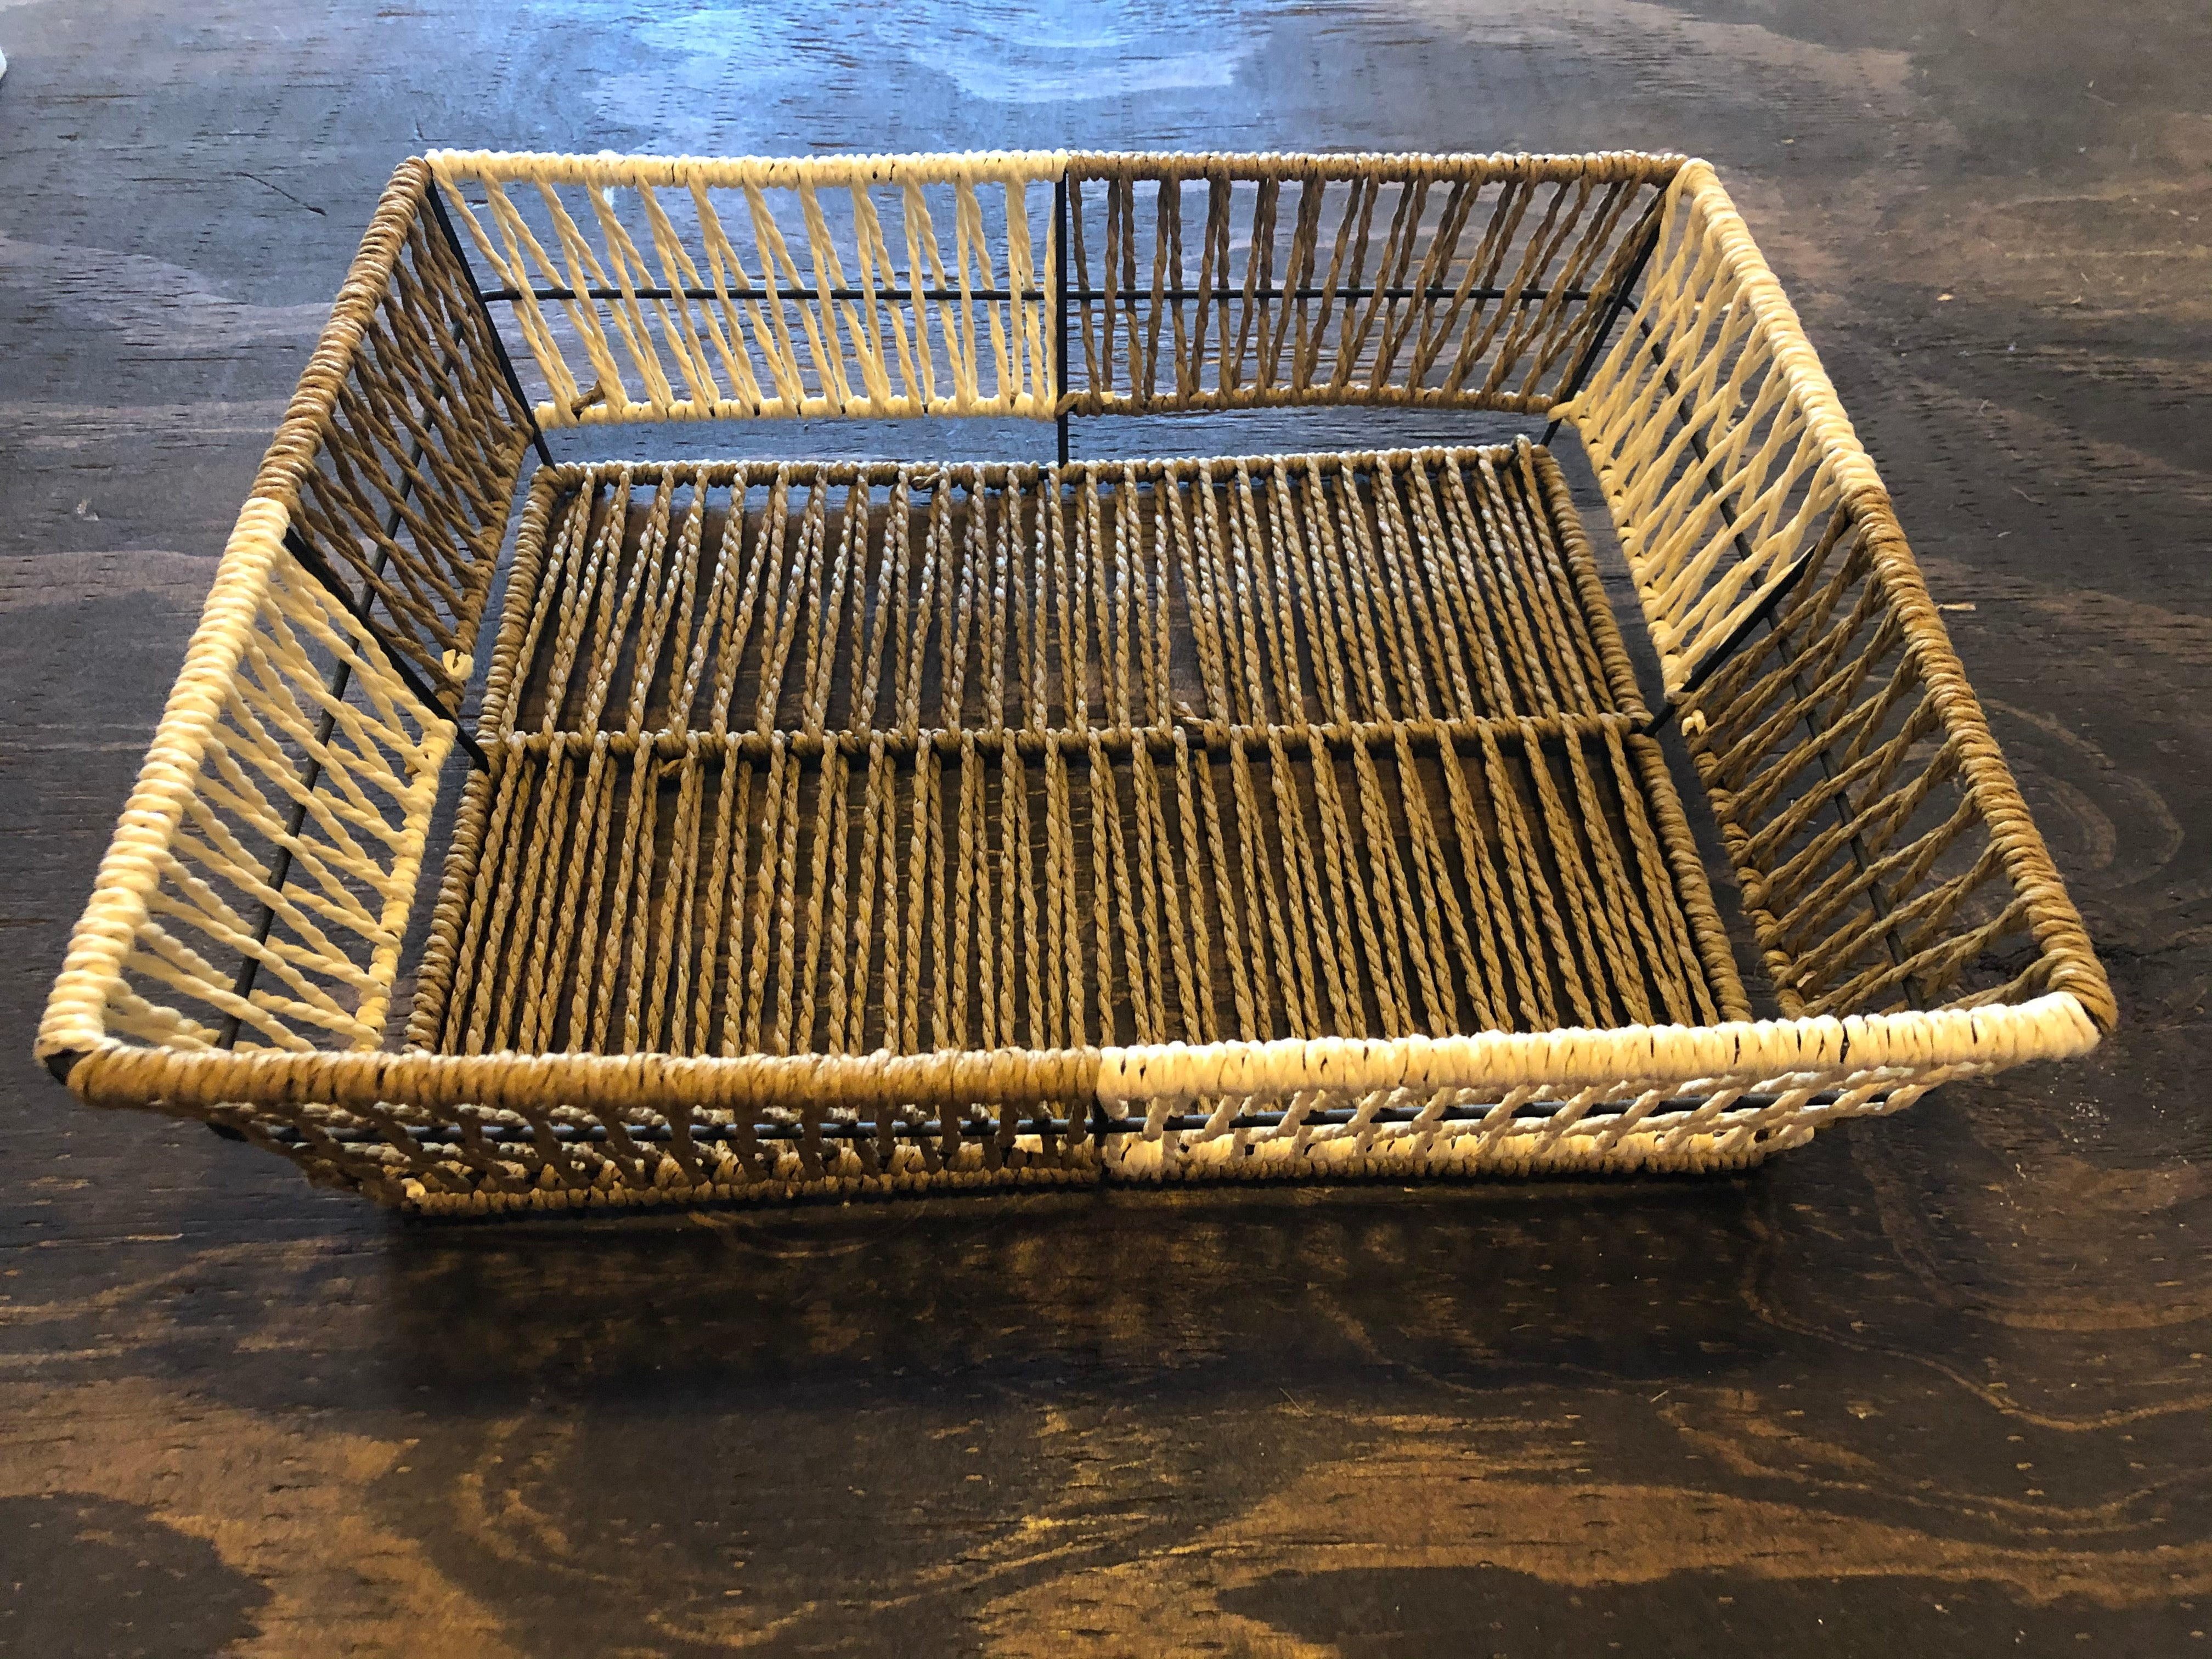 Two-Toned Woven Basket